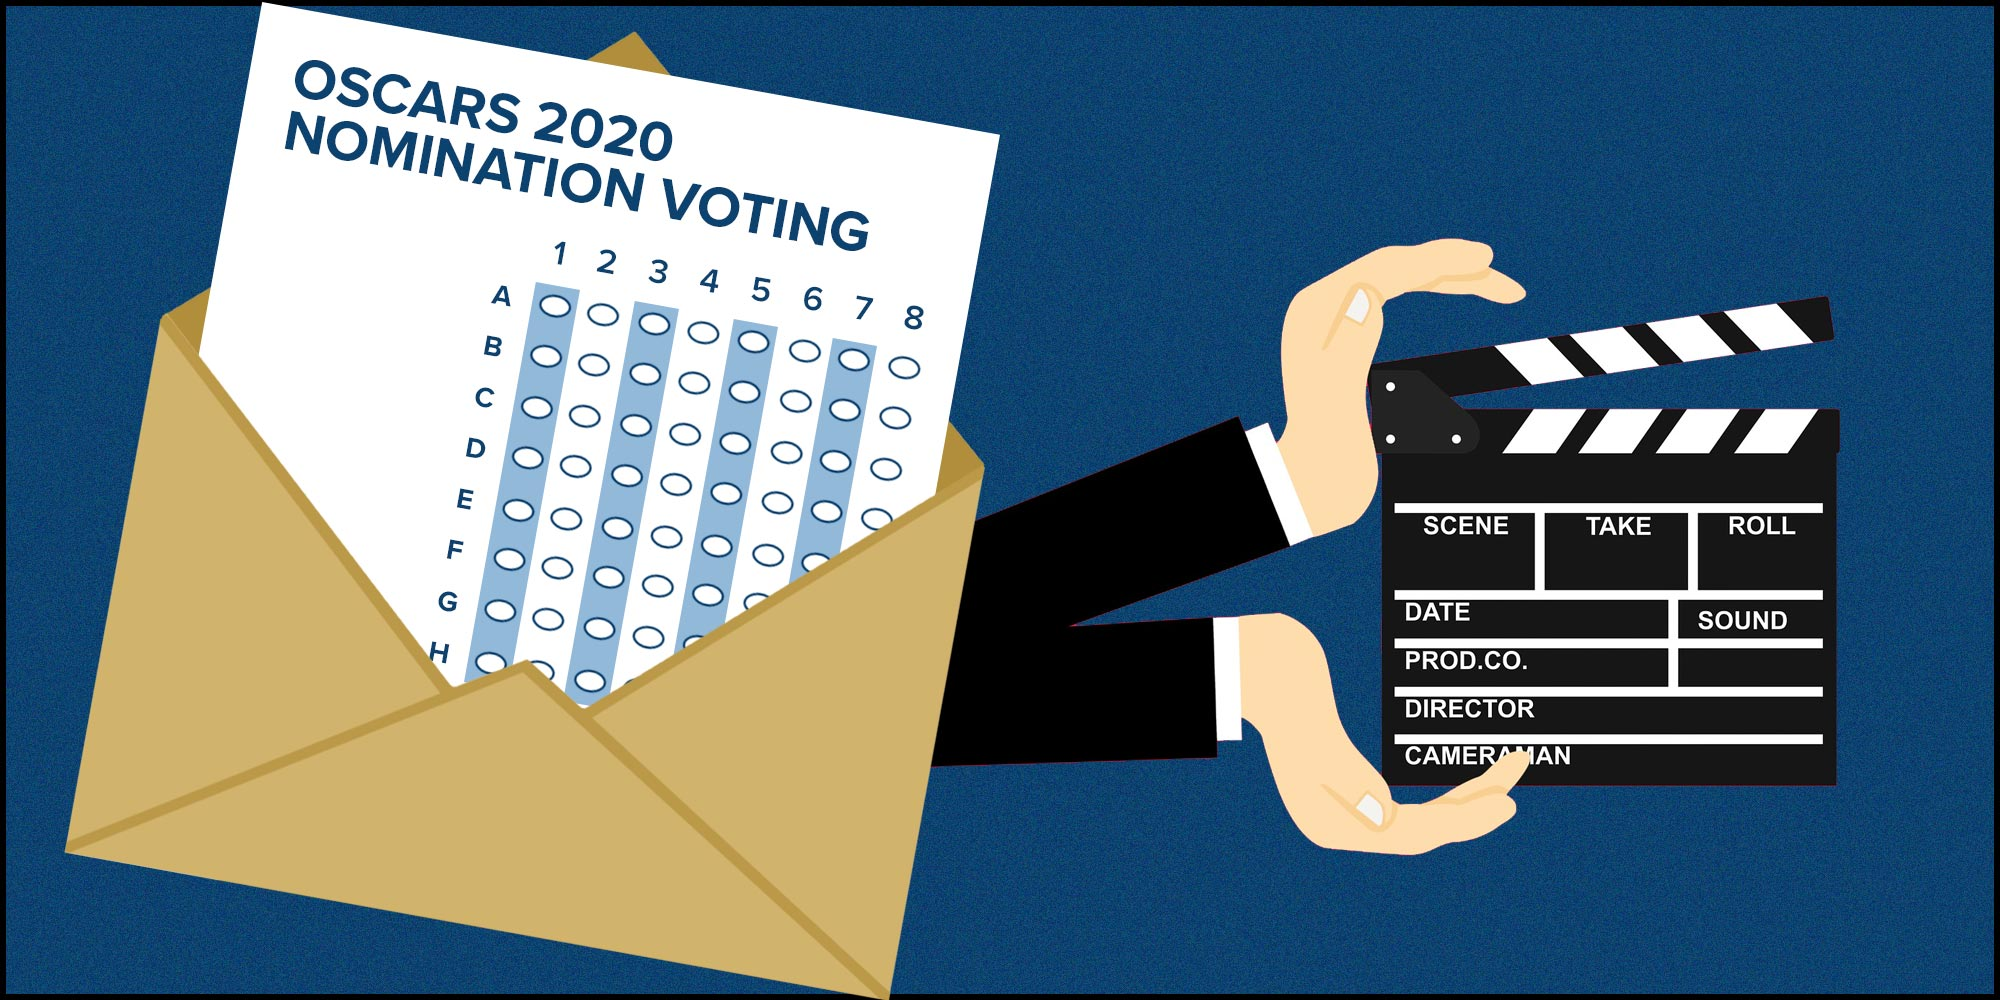 Ranked Choice Voting used for Oscars 2020 nominations